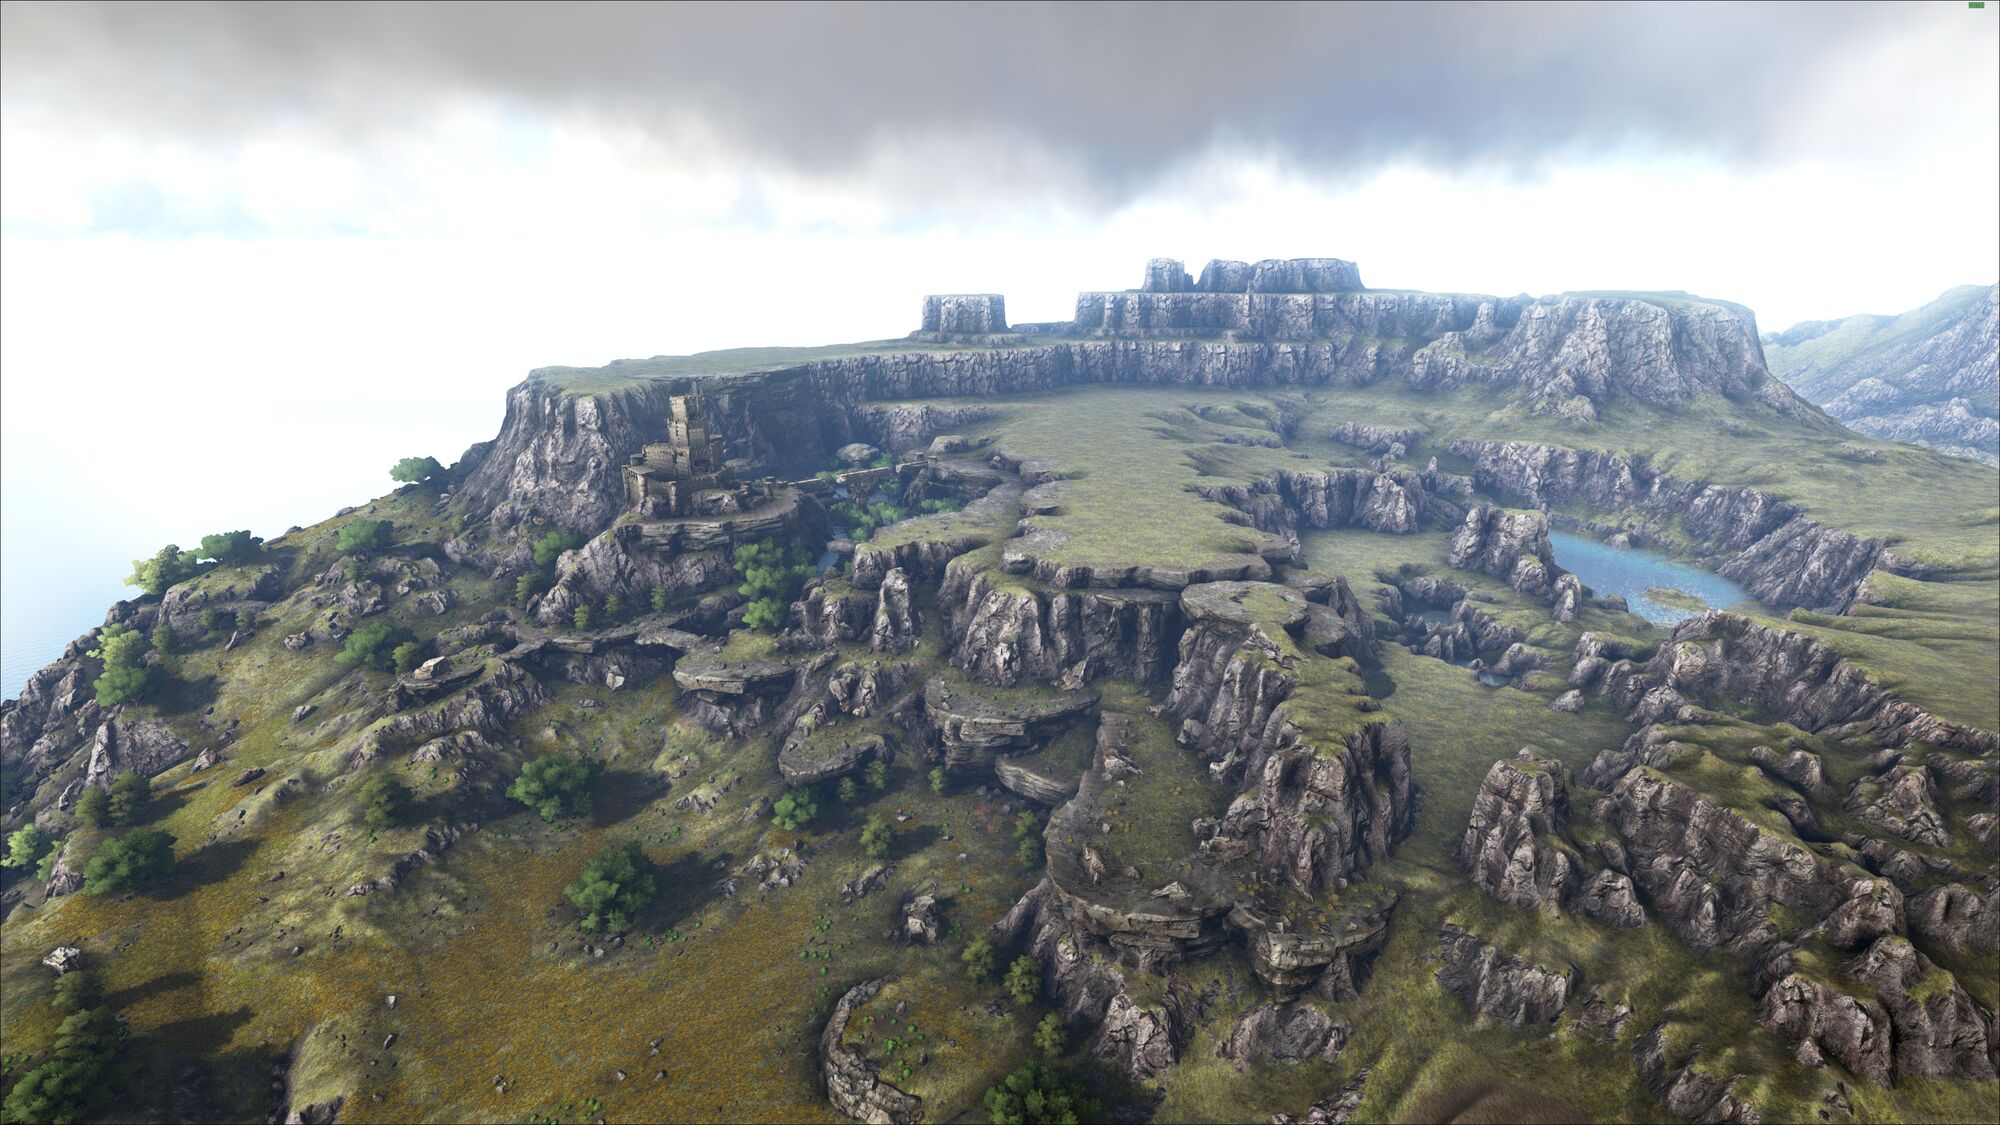 Flatlands | Ragnarok - ARK:Survival Evolved Map Wiki